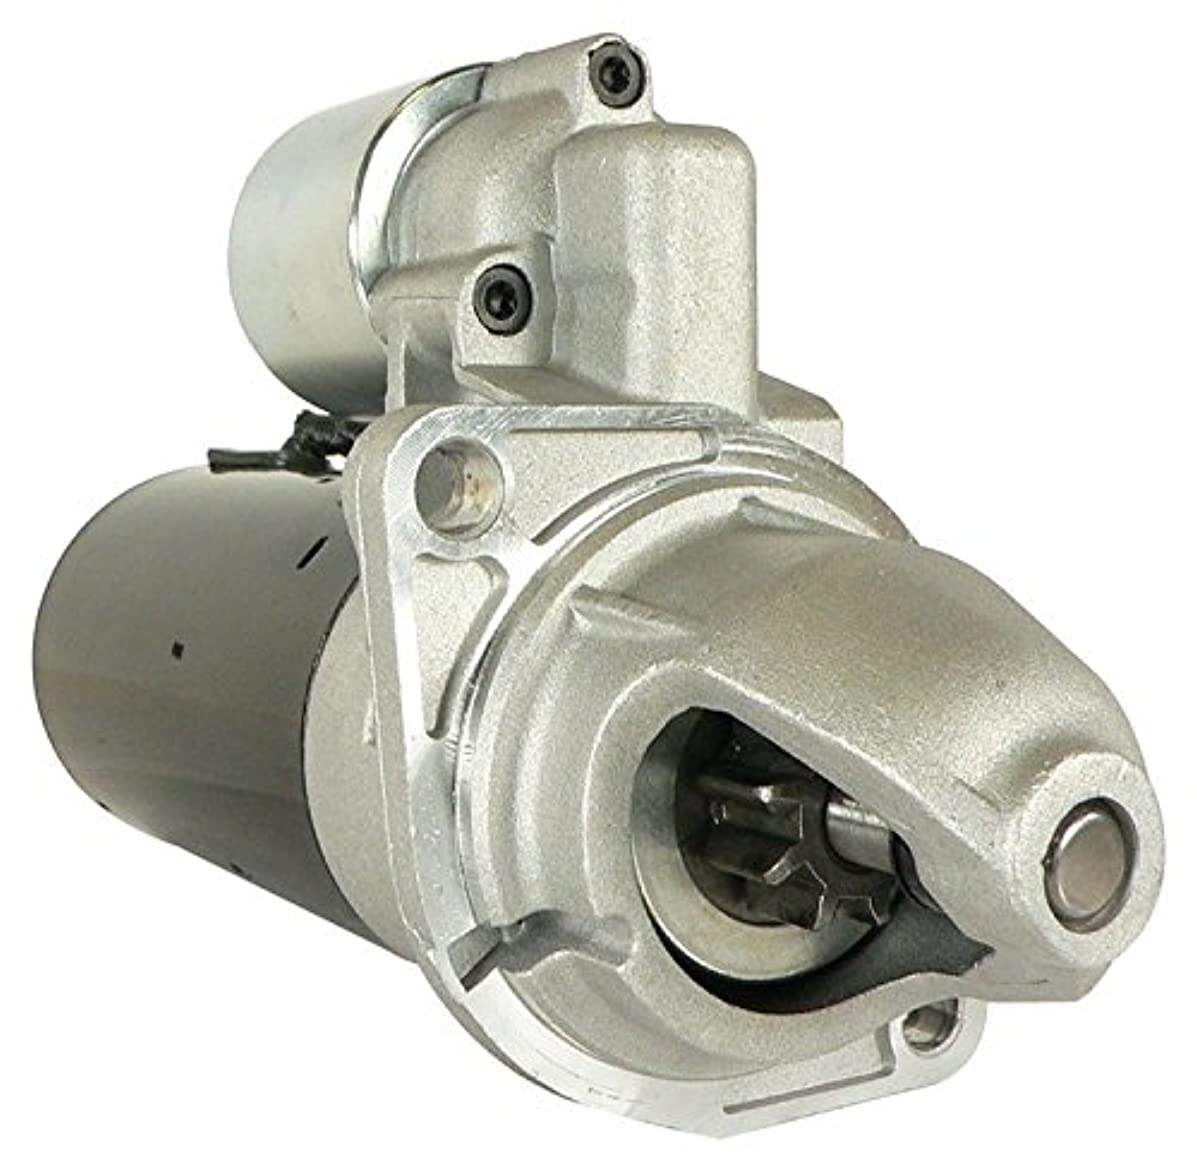 DB Electrical SBO0240 New Starter For Arctic Cat 700 Diesel Atv 2007 2008 2009 2010 2011 2012 08 09 10 11 12, Massey Lombardini 2007 2008 07 08 18365 19157 19800 410-24052 410-24210 112172 A1016373